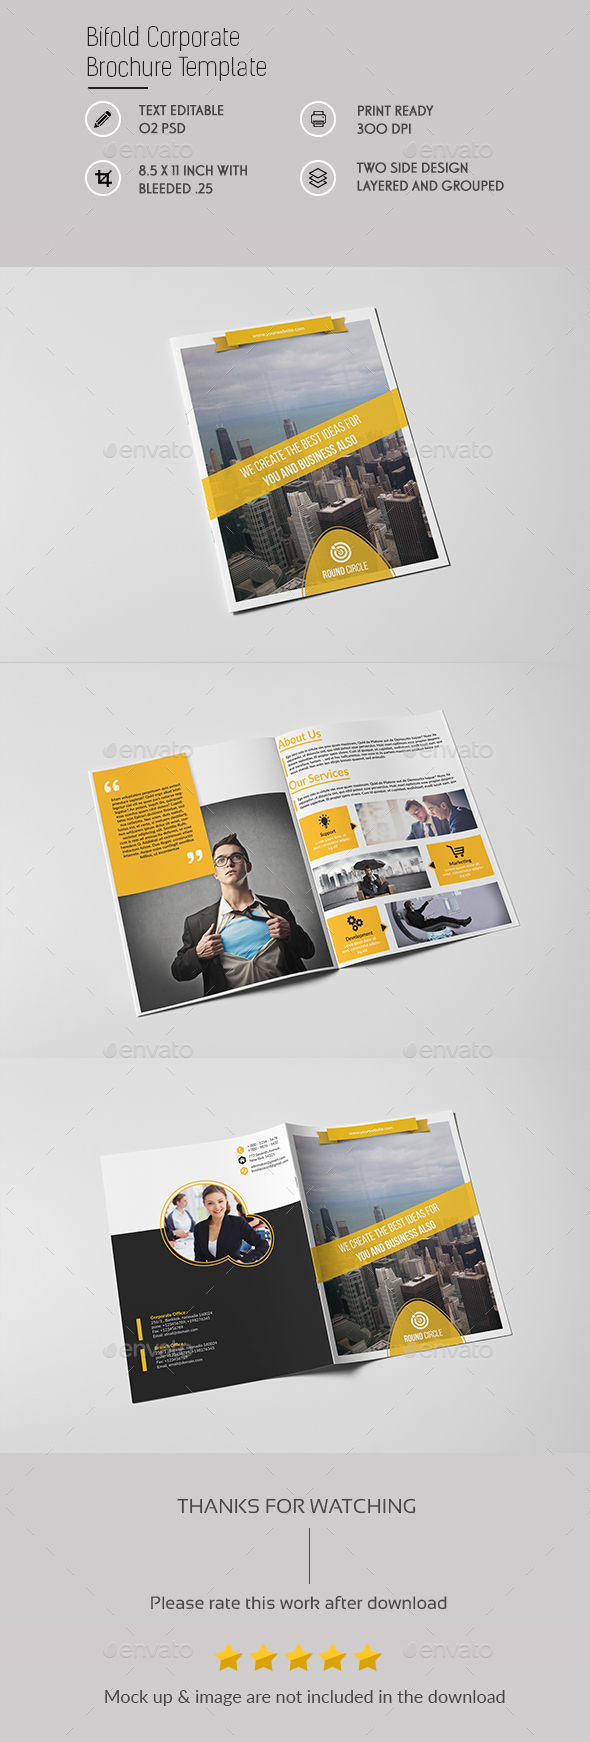 Bifold Corporate Brochure - Brochures Print Templates